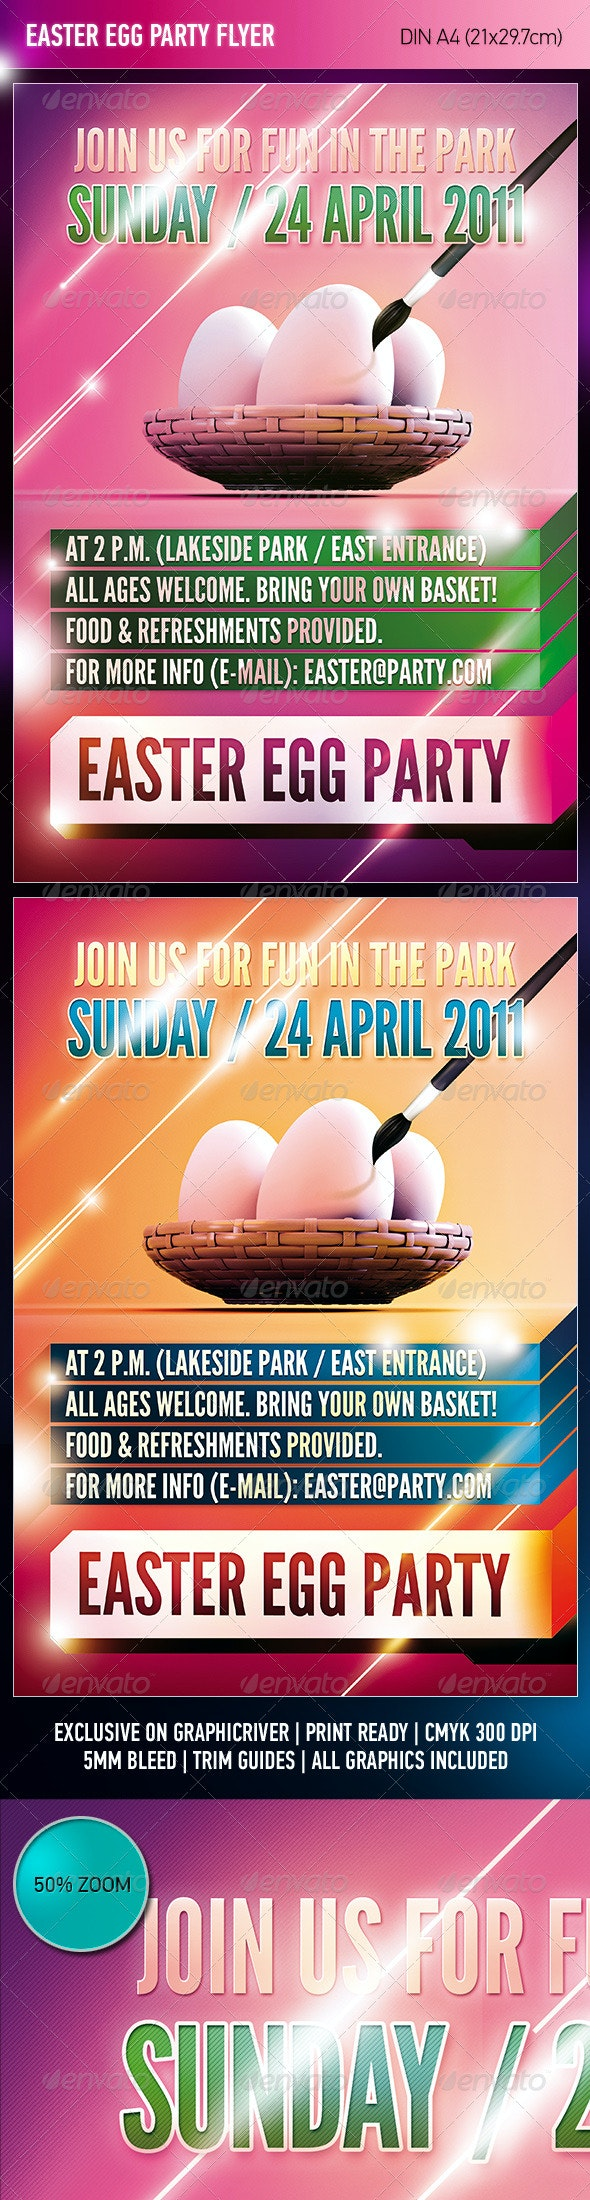 Easter Egg Party Flyer - Clubs & Parties Events